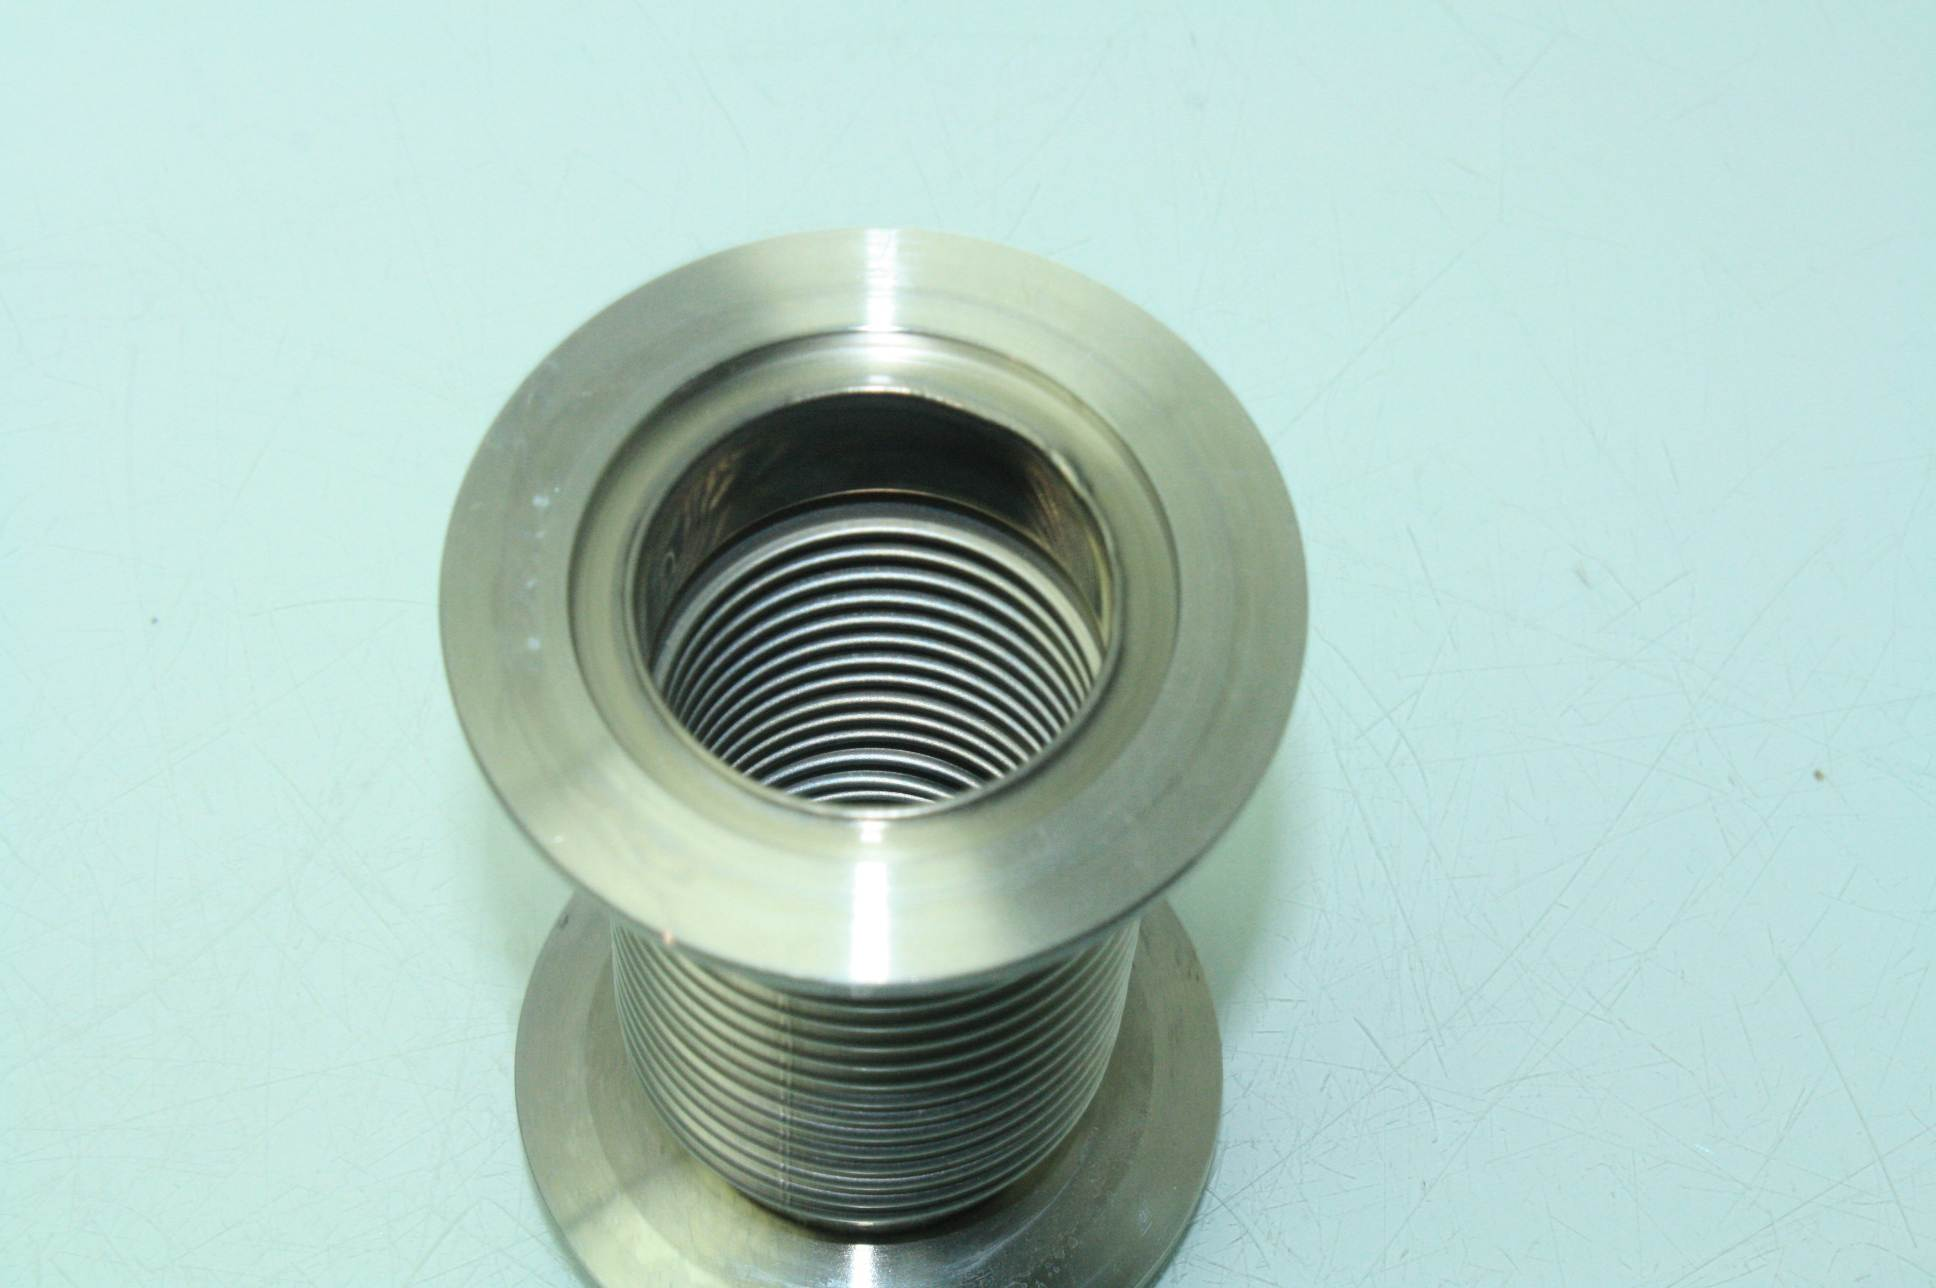 Mks stainless steel vacuum bellow tubing fitting mm bore